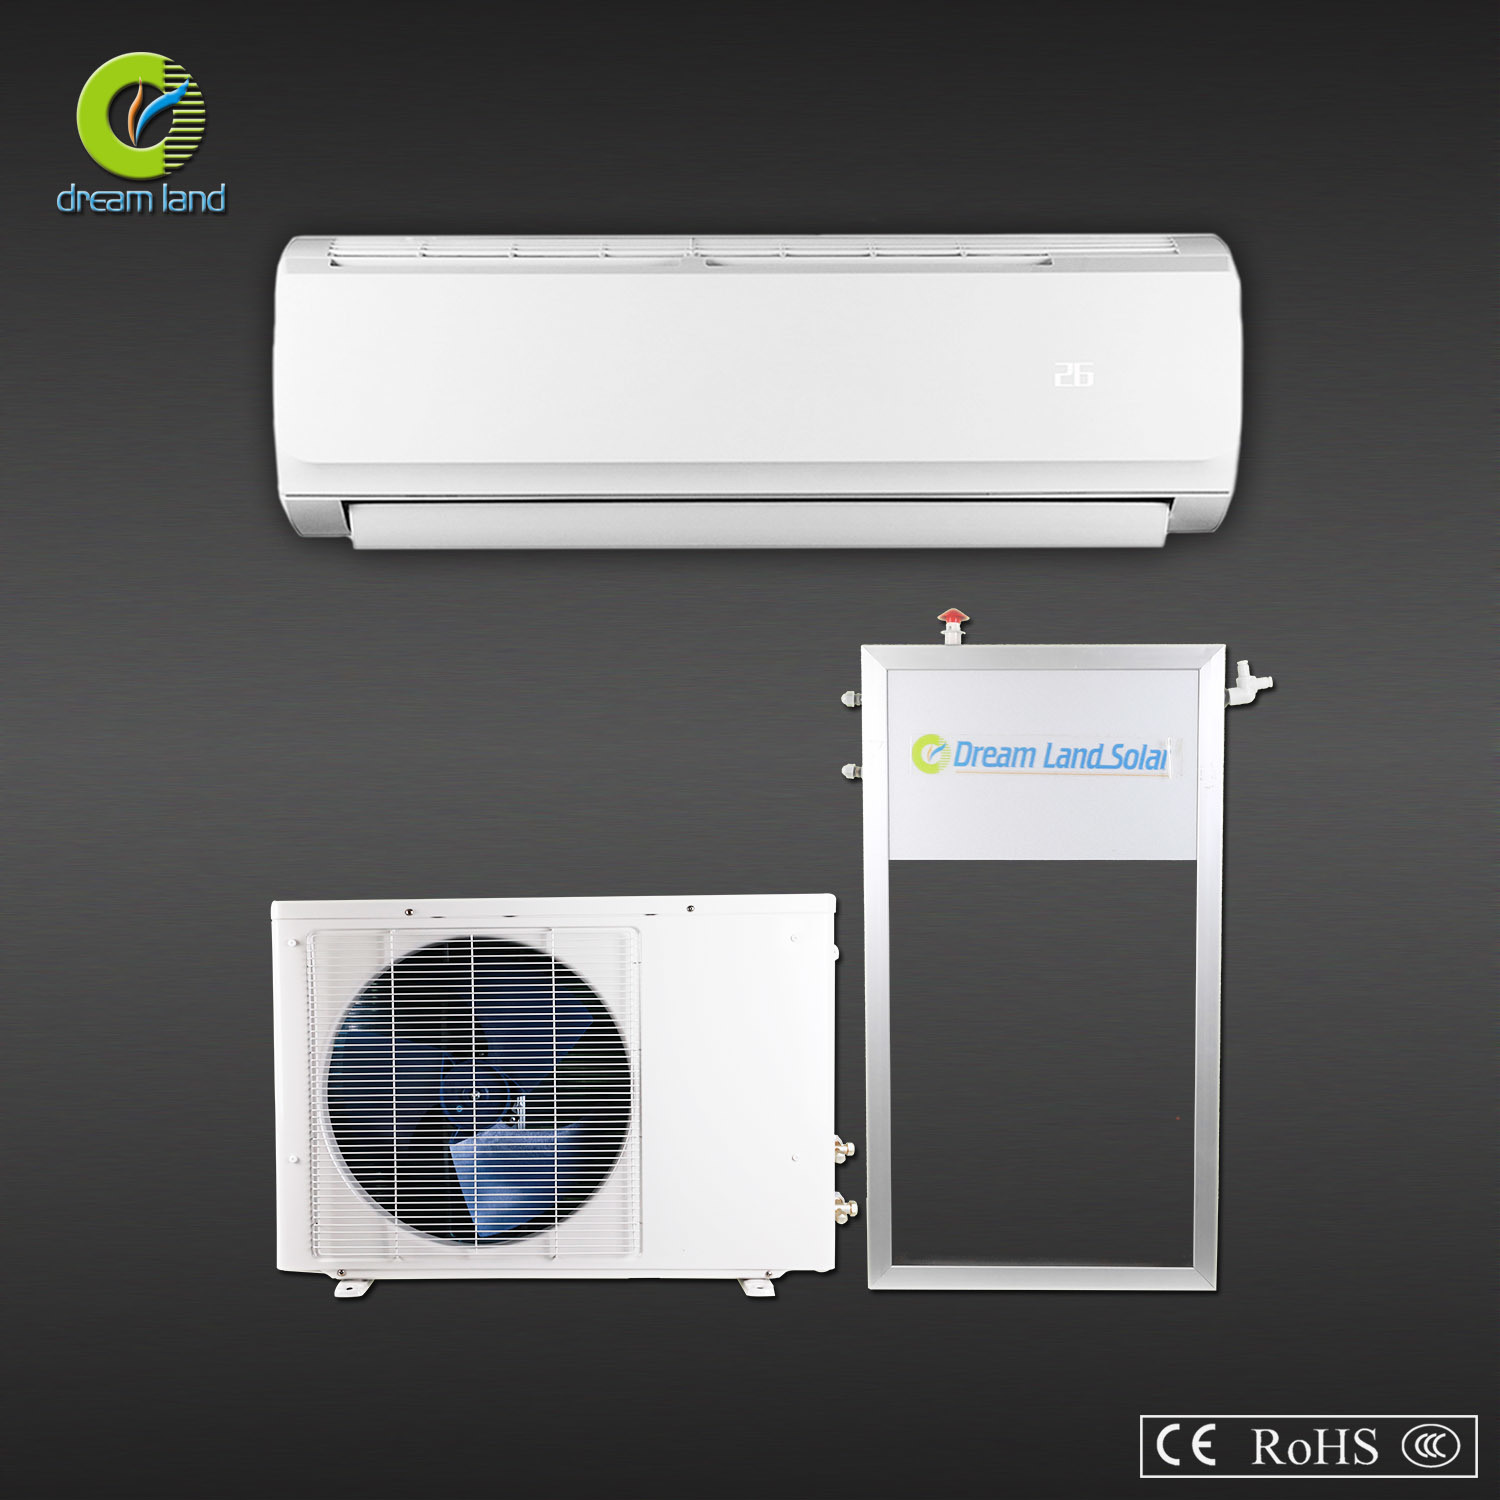 solar air conditioner and solar panel jpg 350x350 jpg Book Covers #8CB714